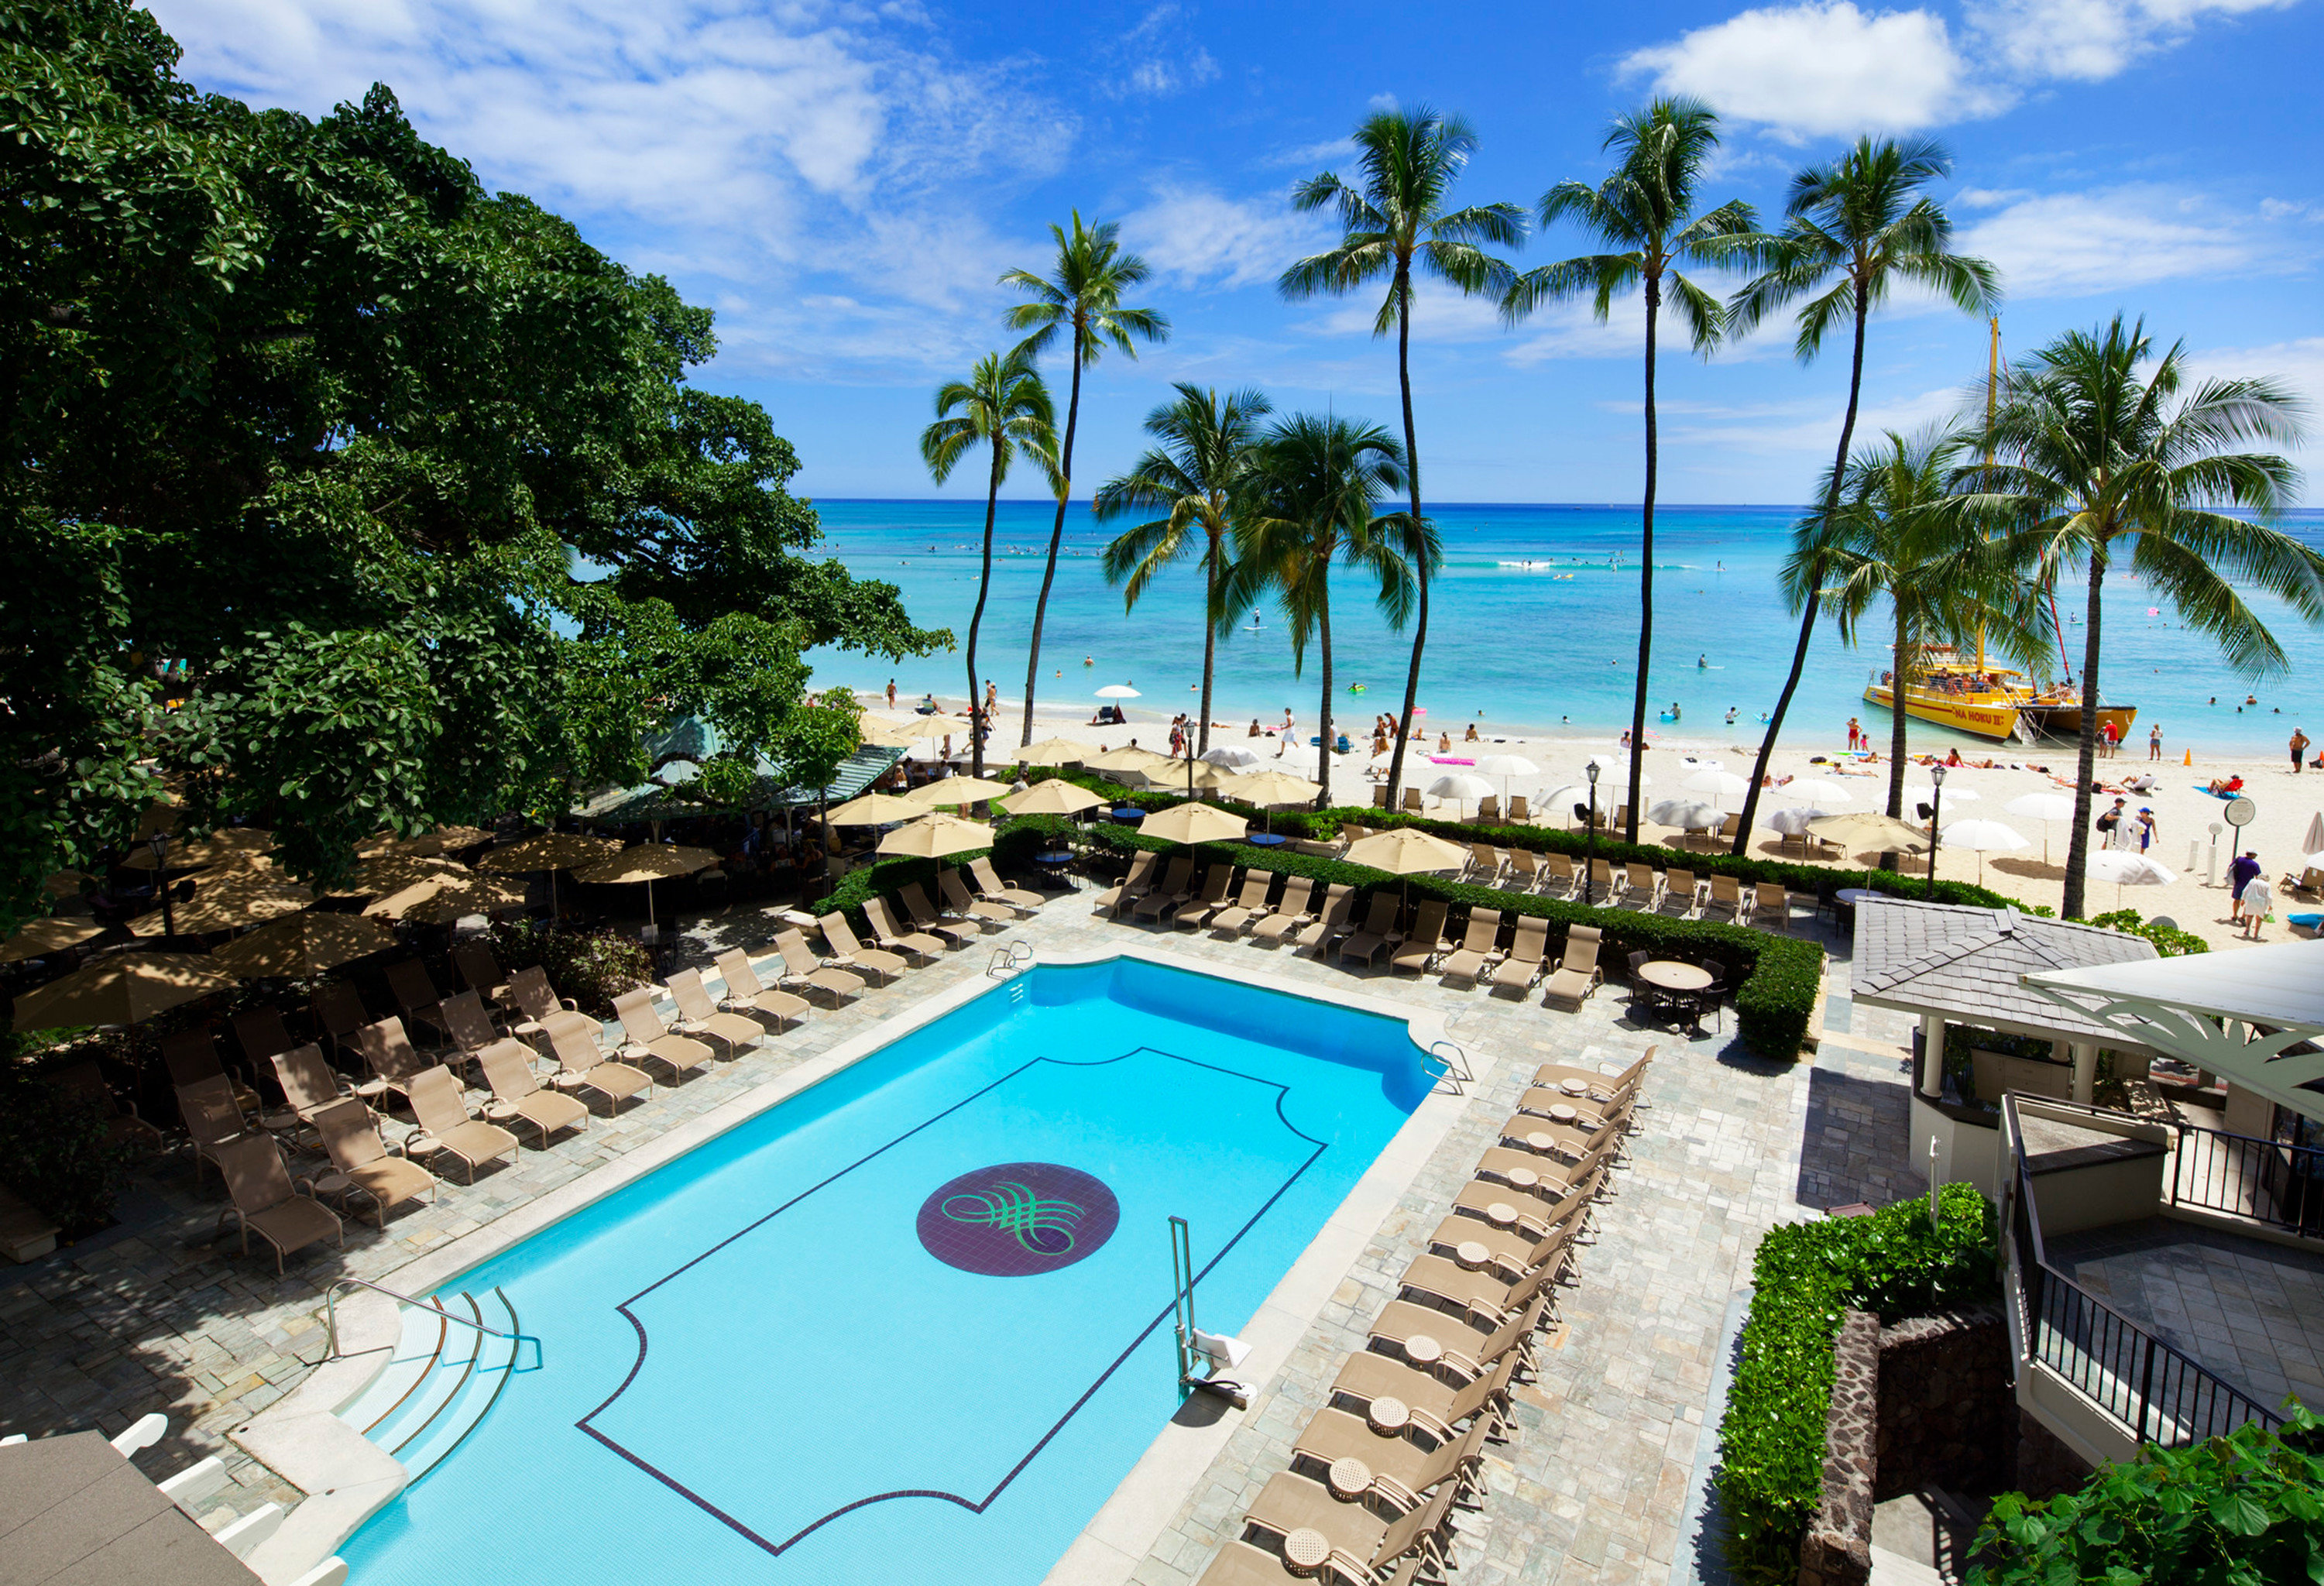 Beachfront Boutique Hotels Hawaii Honolulu Hotels Play Pool Resort Scenic views Trip Ideas tree swimming pool leisure property caribbean Villa palm resort town Lagoon mansion plant shore